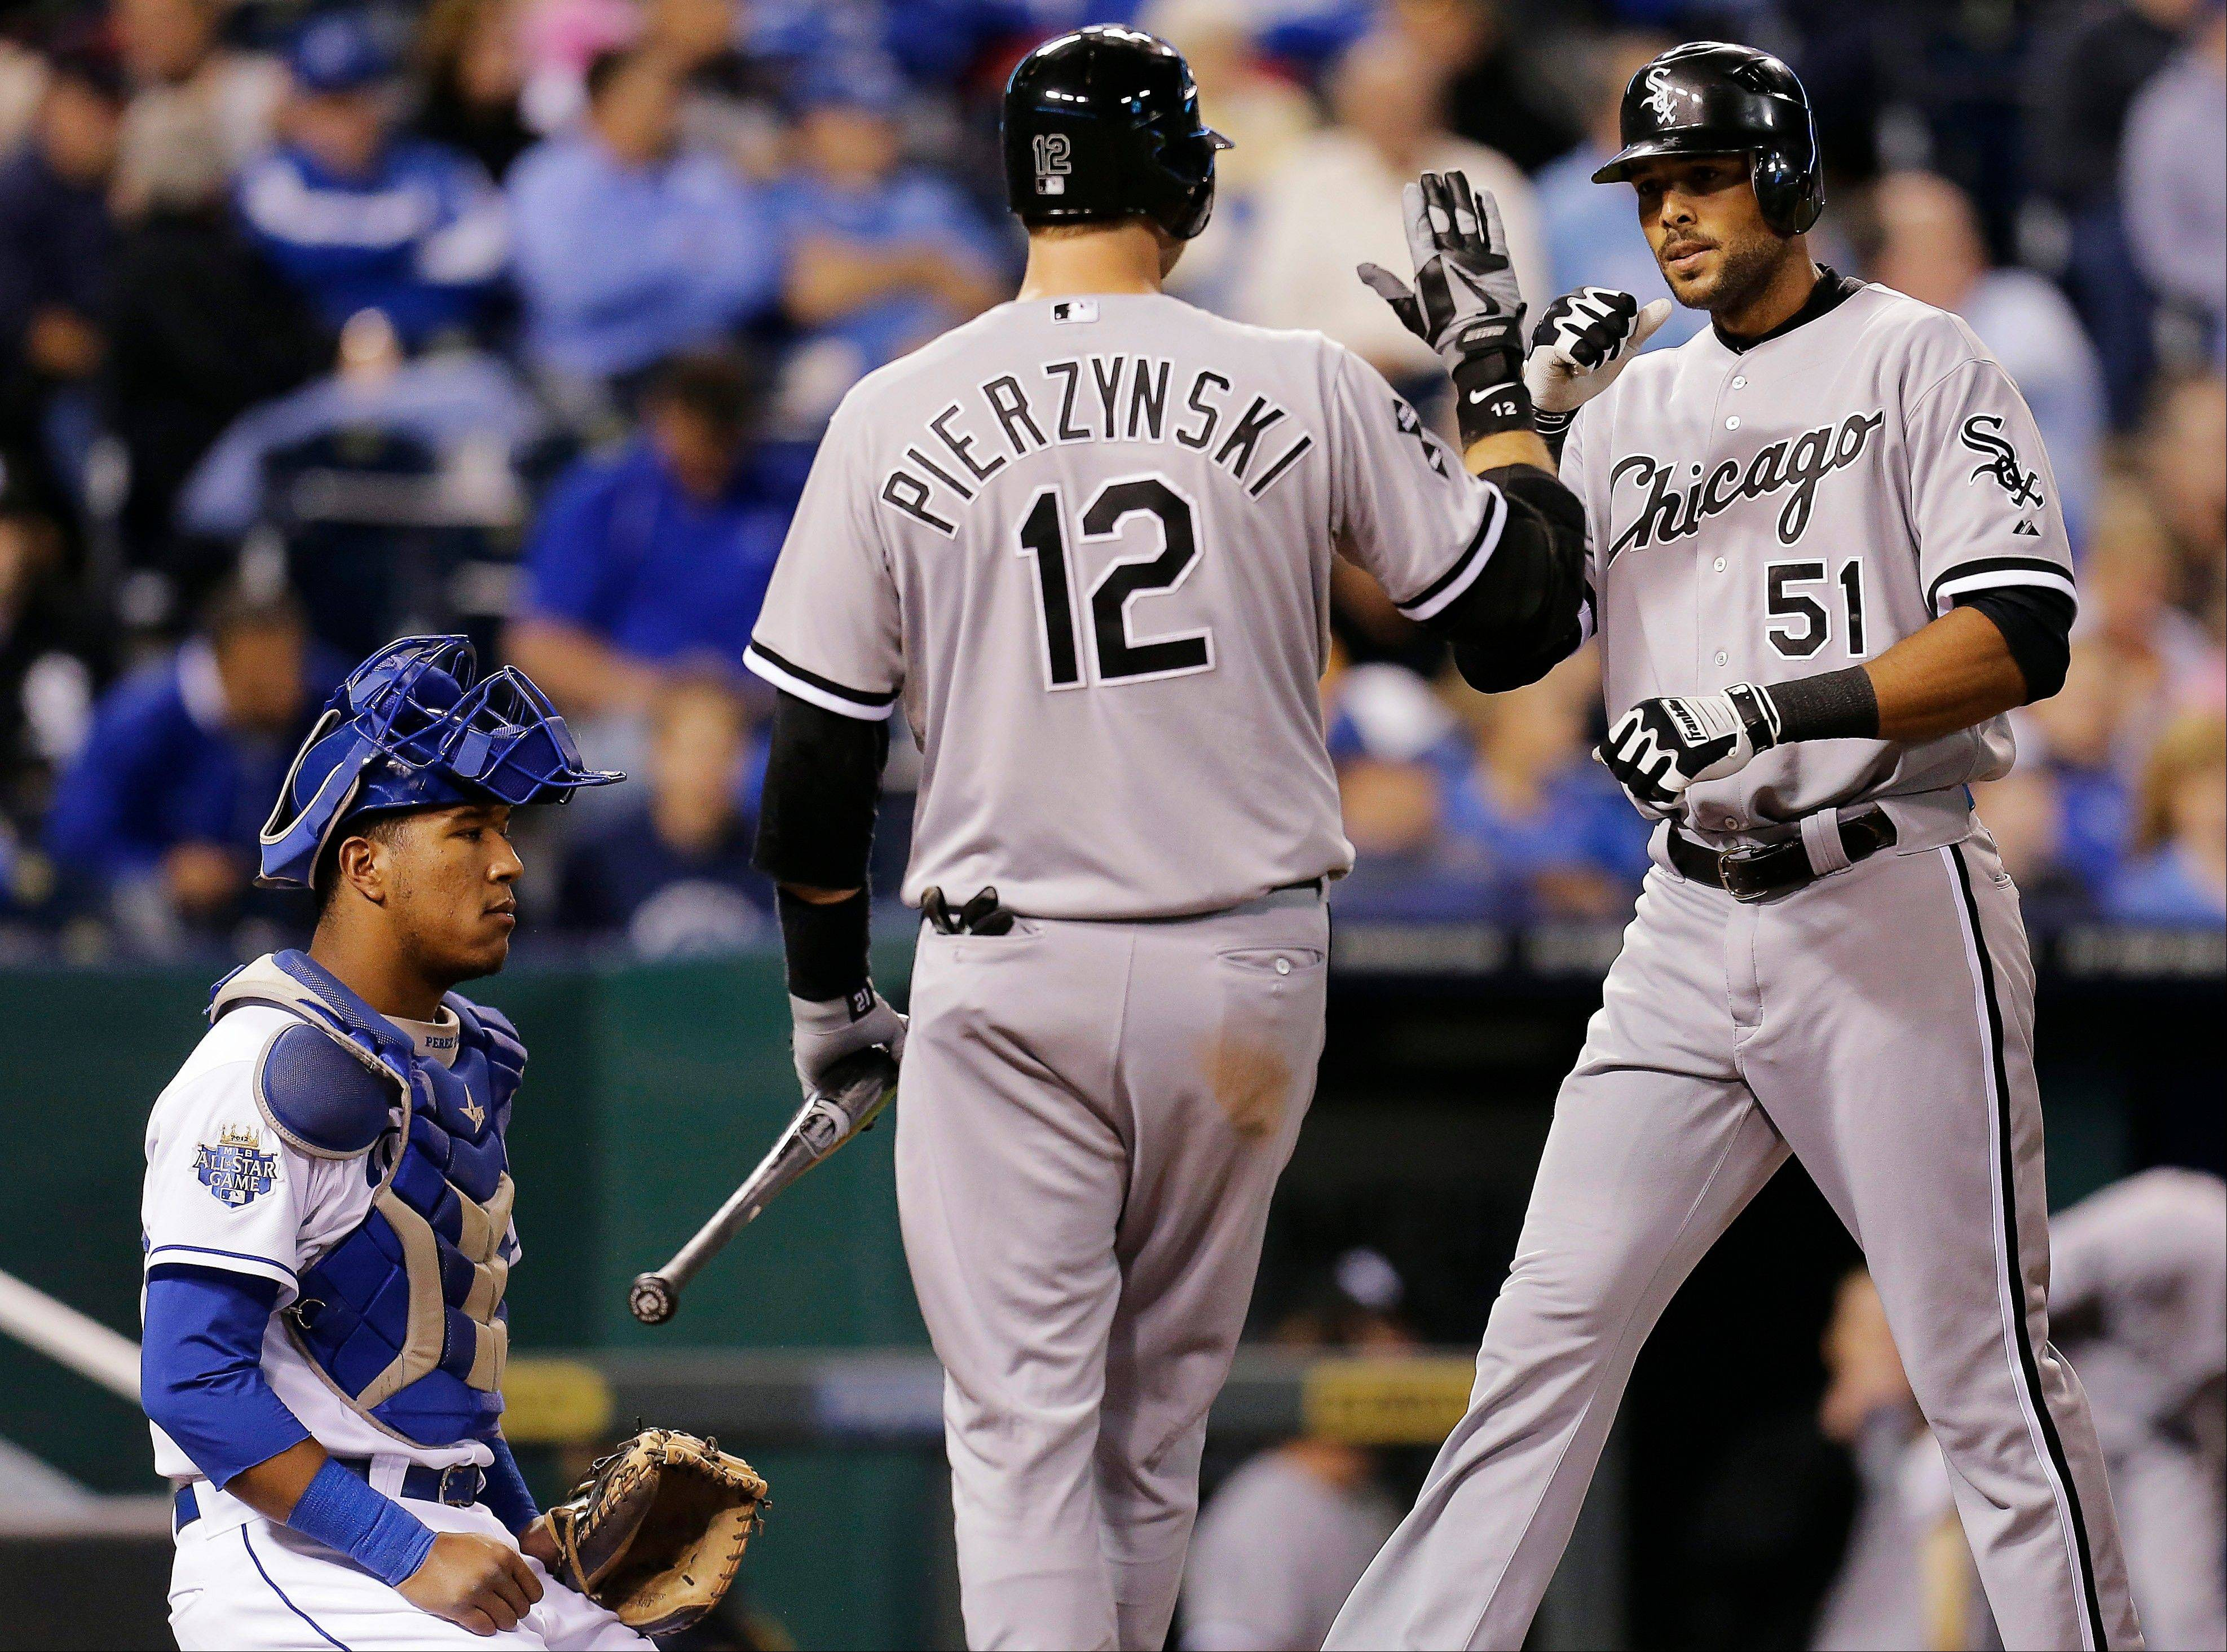 White Sox catcher A.J. Pierzynski celebrates Tuesday with Alex Rios after Rios hit a solo home run during the seventh inning against the Kansas City Royals.